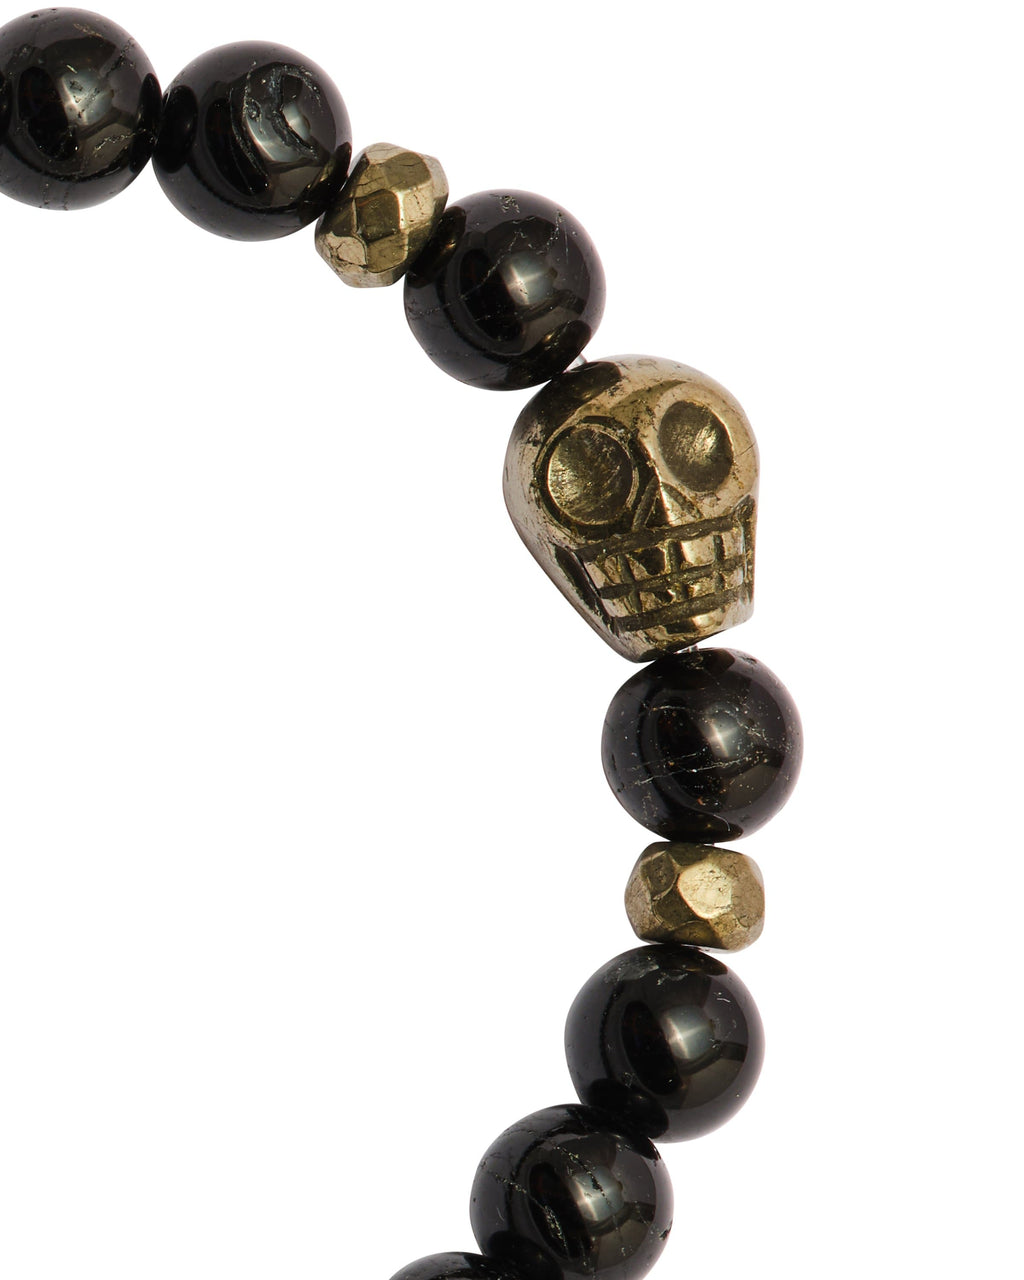 Black Tourmaline with Pyrite Skull - PRATT DADDY